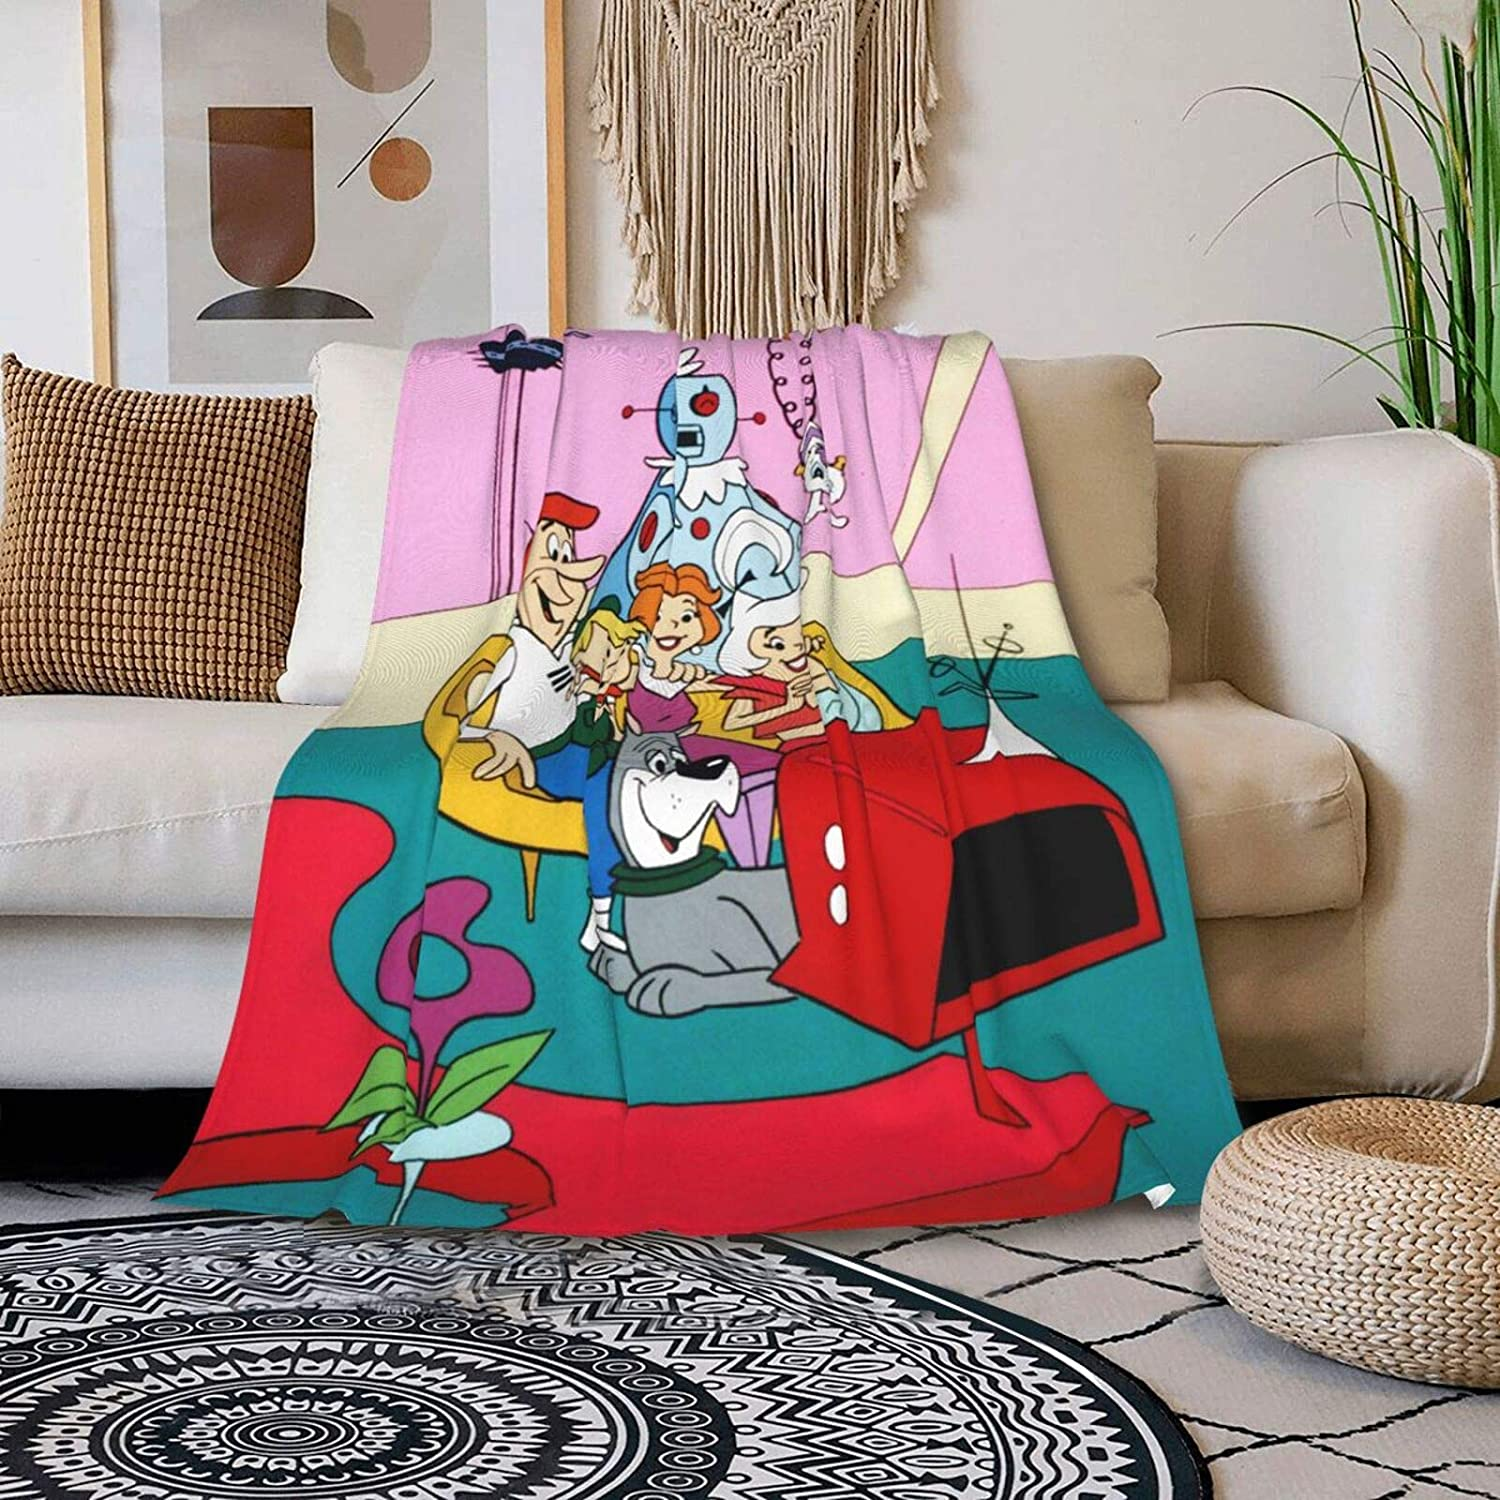 MNDERDAIEY Max 56% OFF The Jetsons Blanket NEW before selling ☆ Flannel Be Double Cartoon